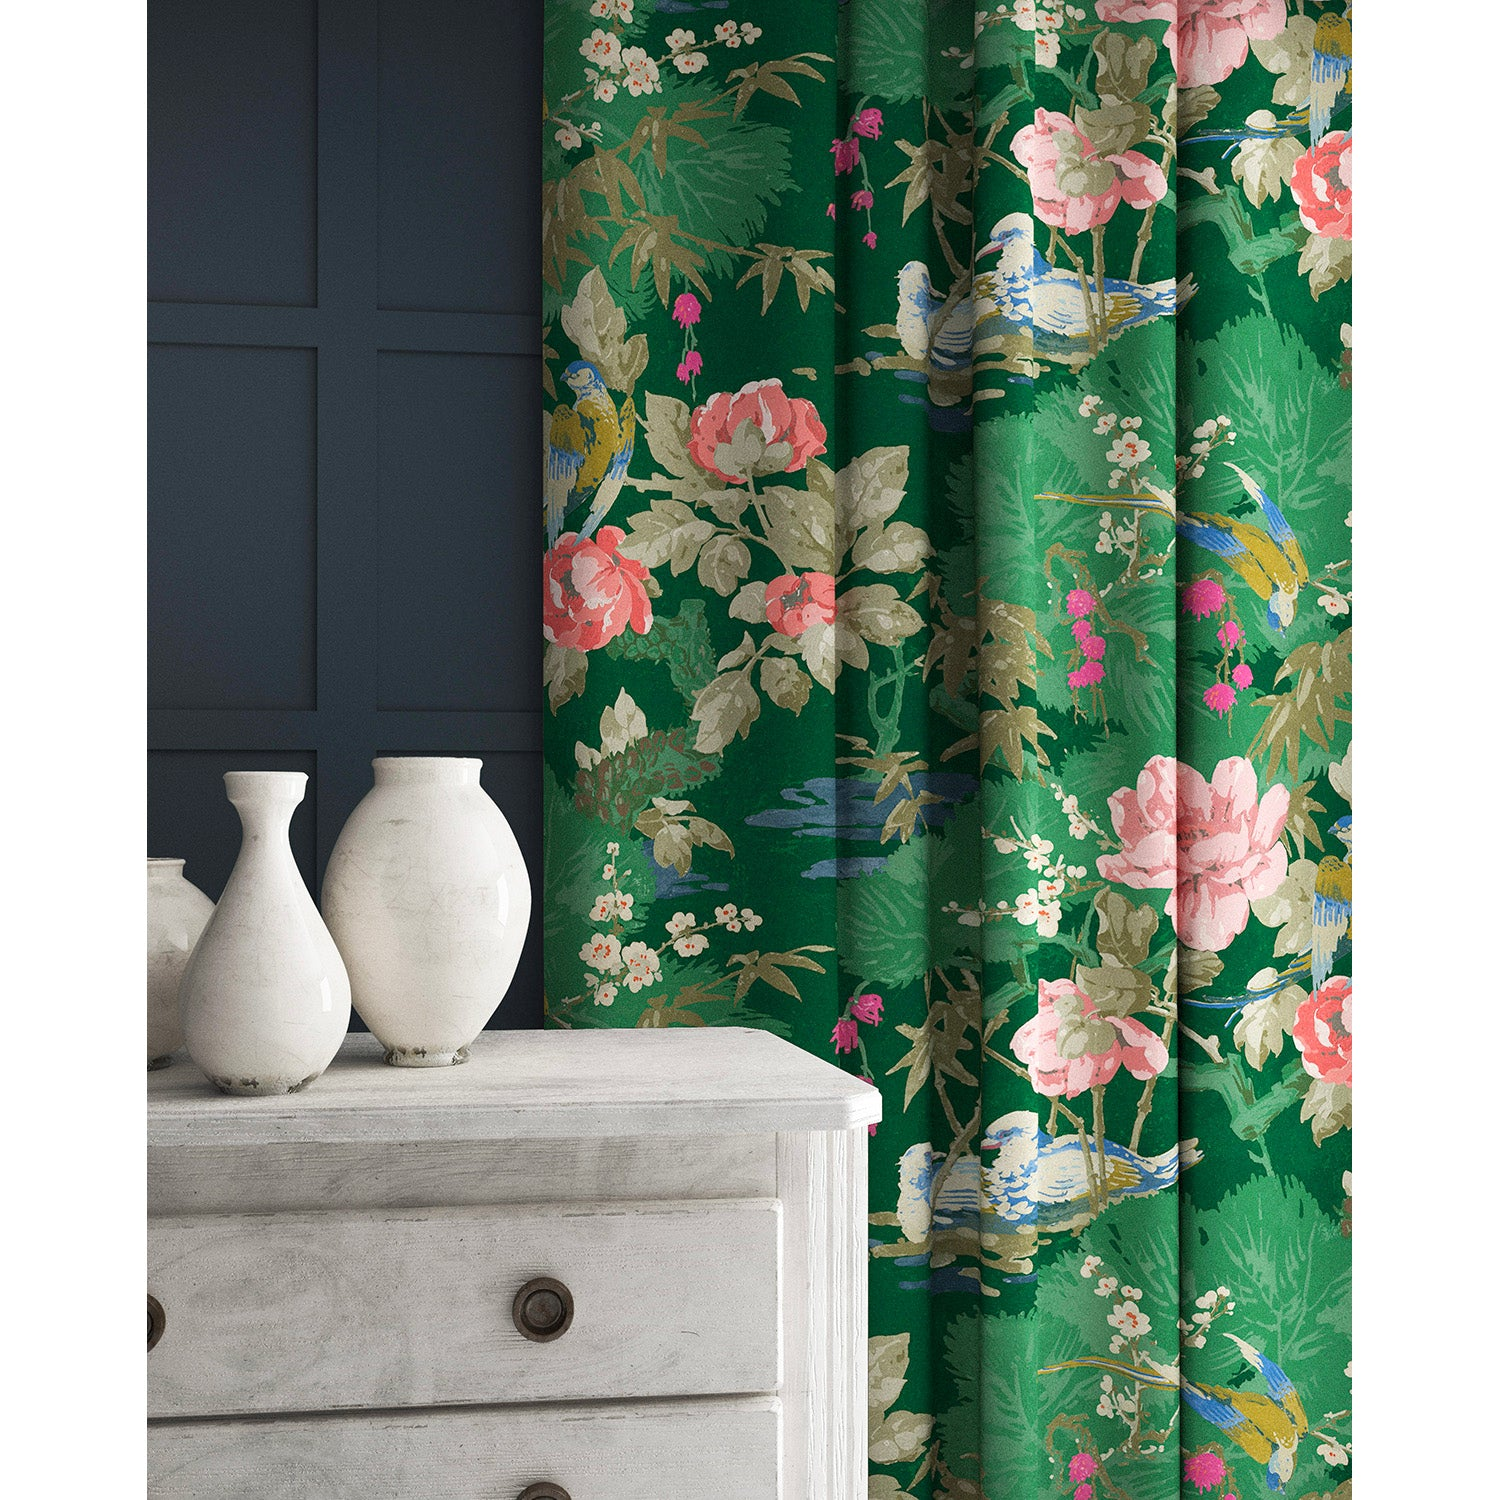 Curtains in a pink and green velvet fabric with stain resistant finish and bird and flower design